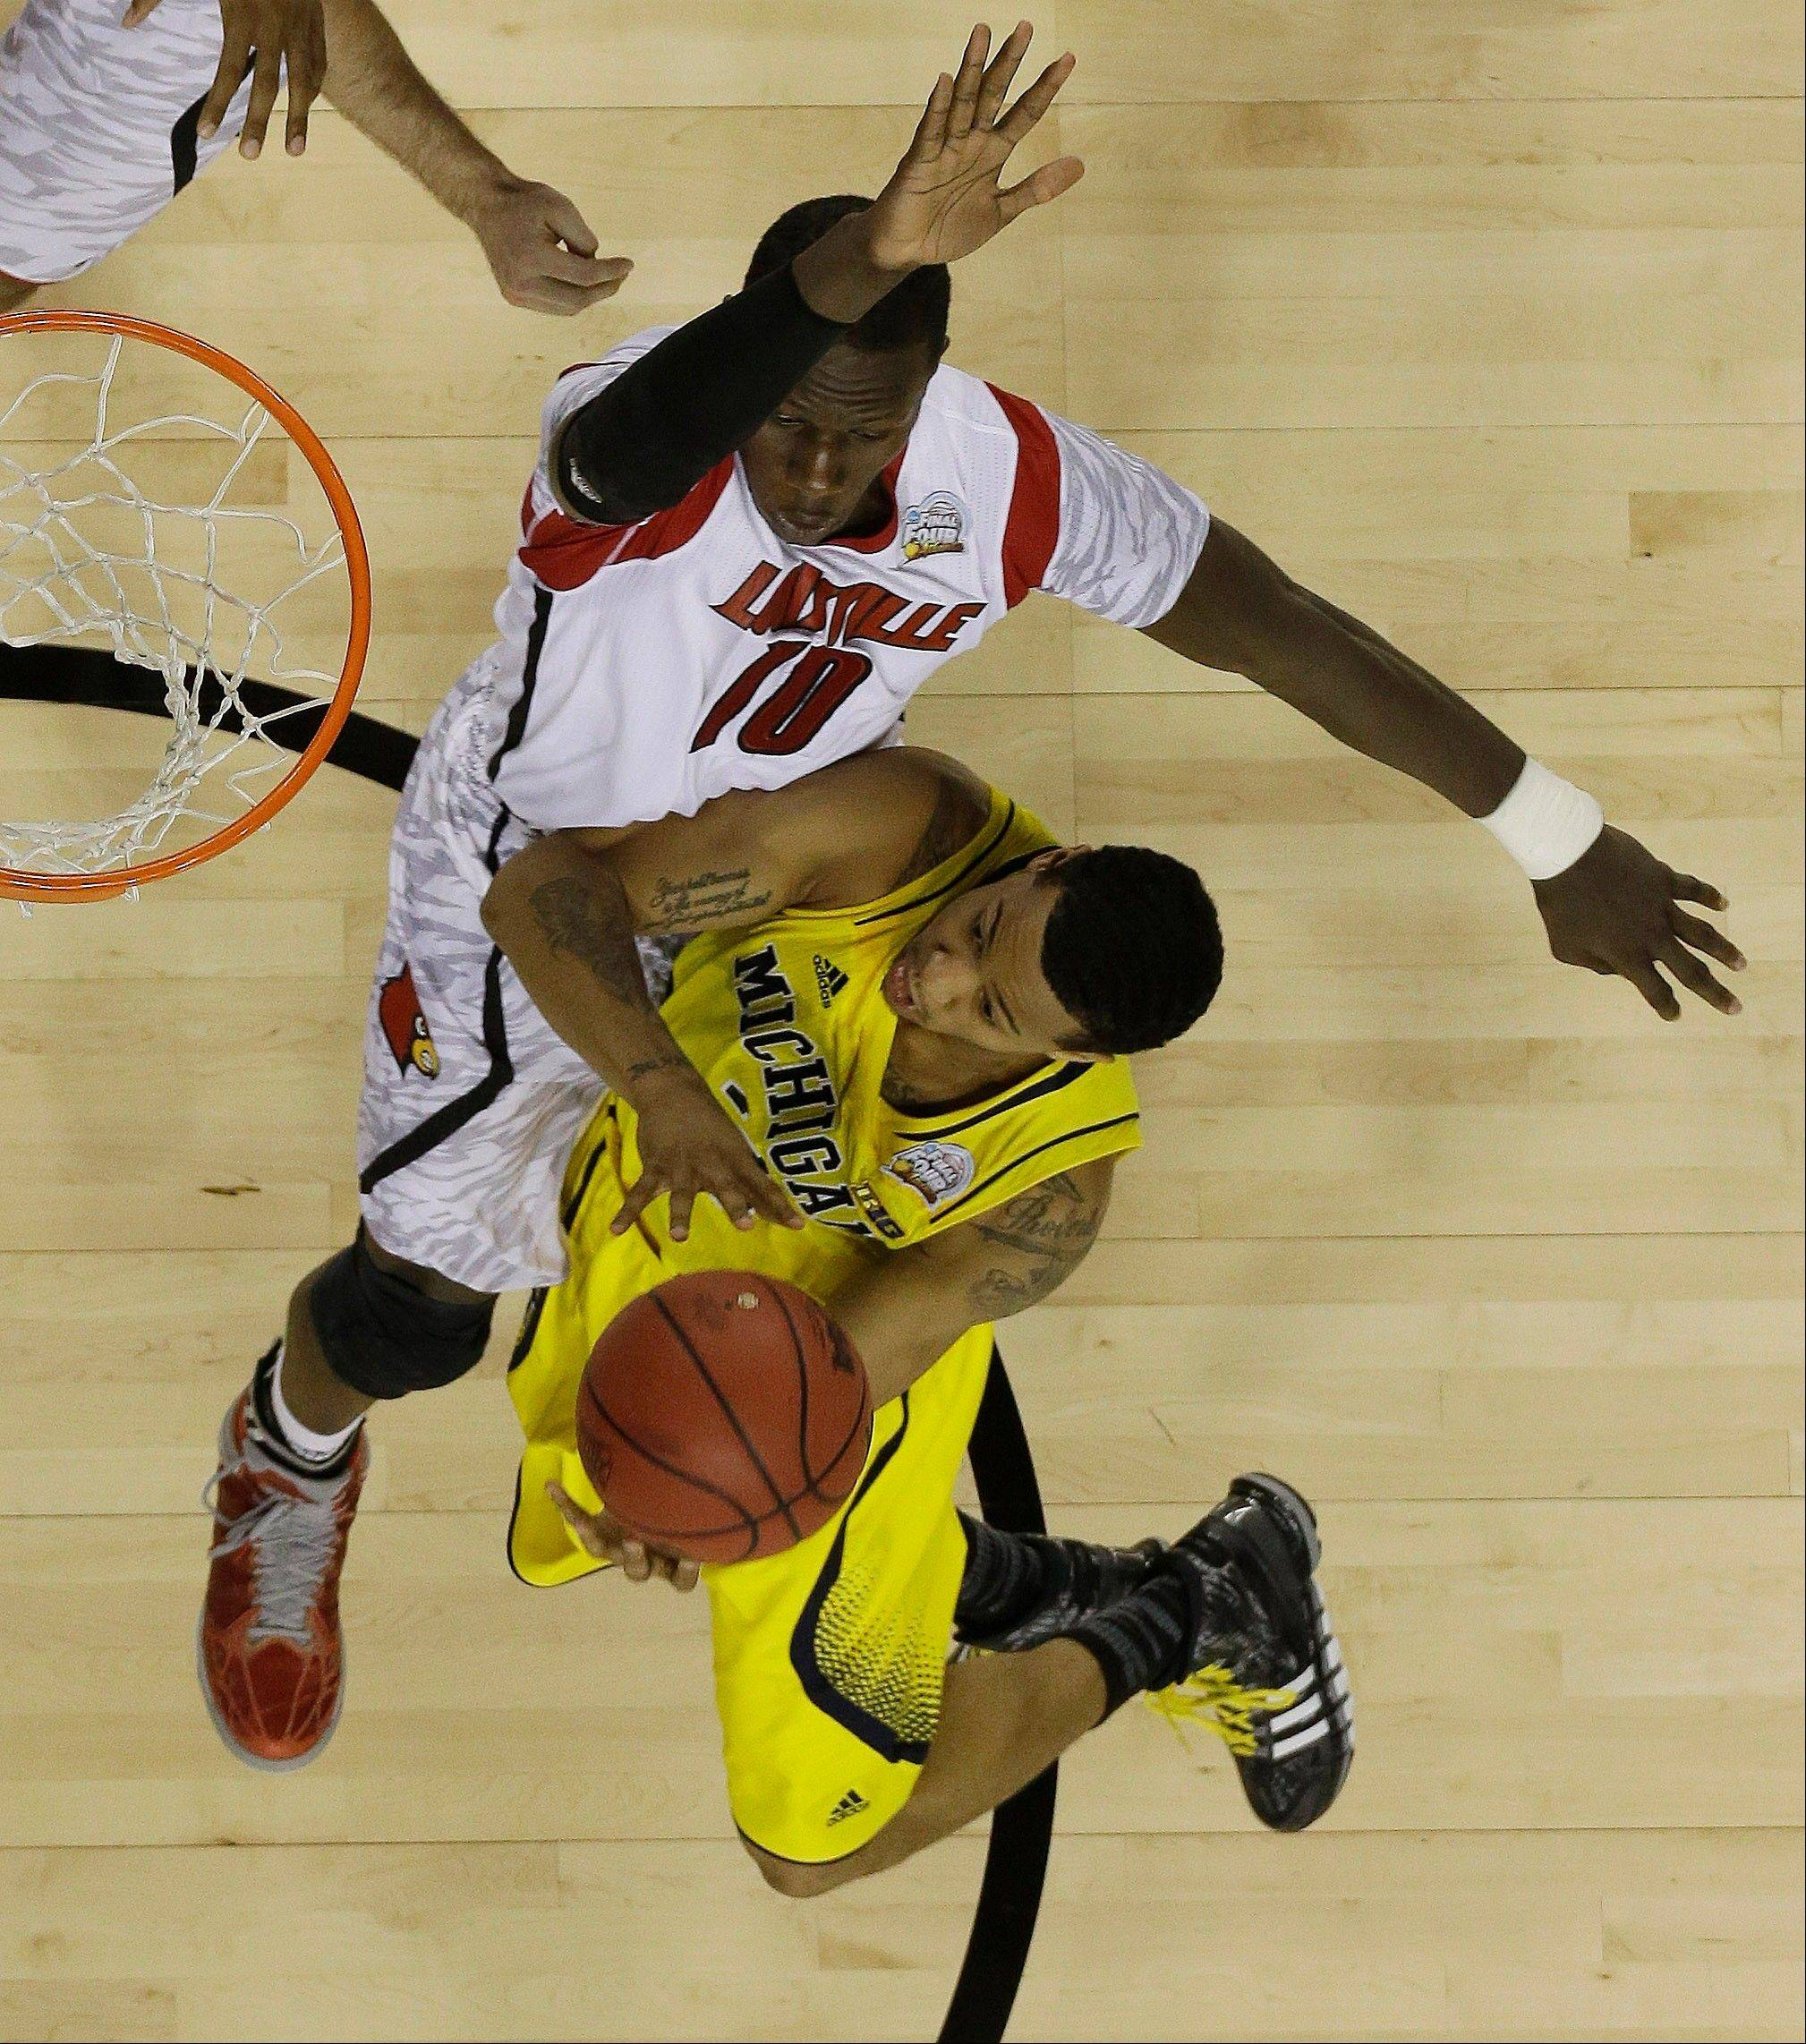 Michigan guard Trey Burke (3) heads to the hoop as Louisville center Gorgui Dieng (10) defends during the second half of the NCAA Final Four tournament college basketball championship game Monday, April 8, 2013, in Atlanta.